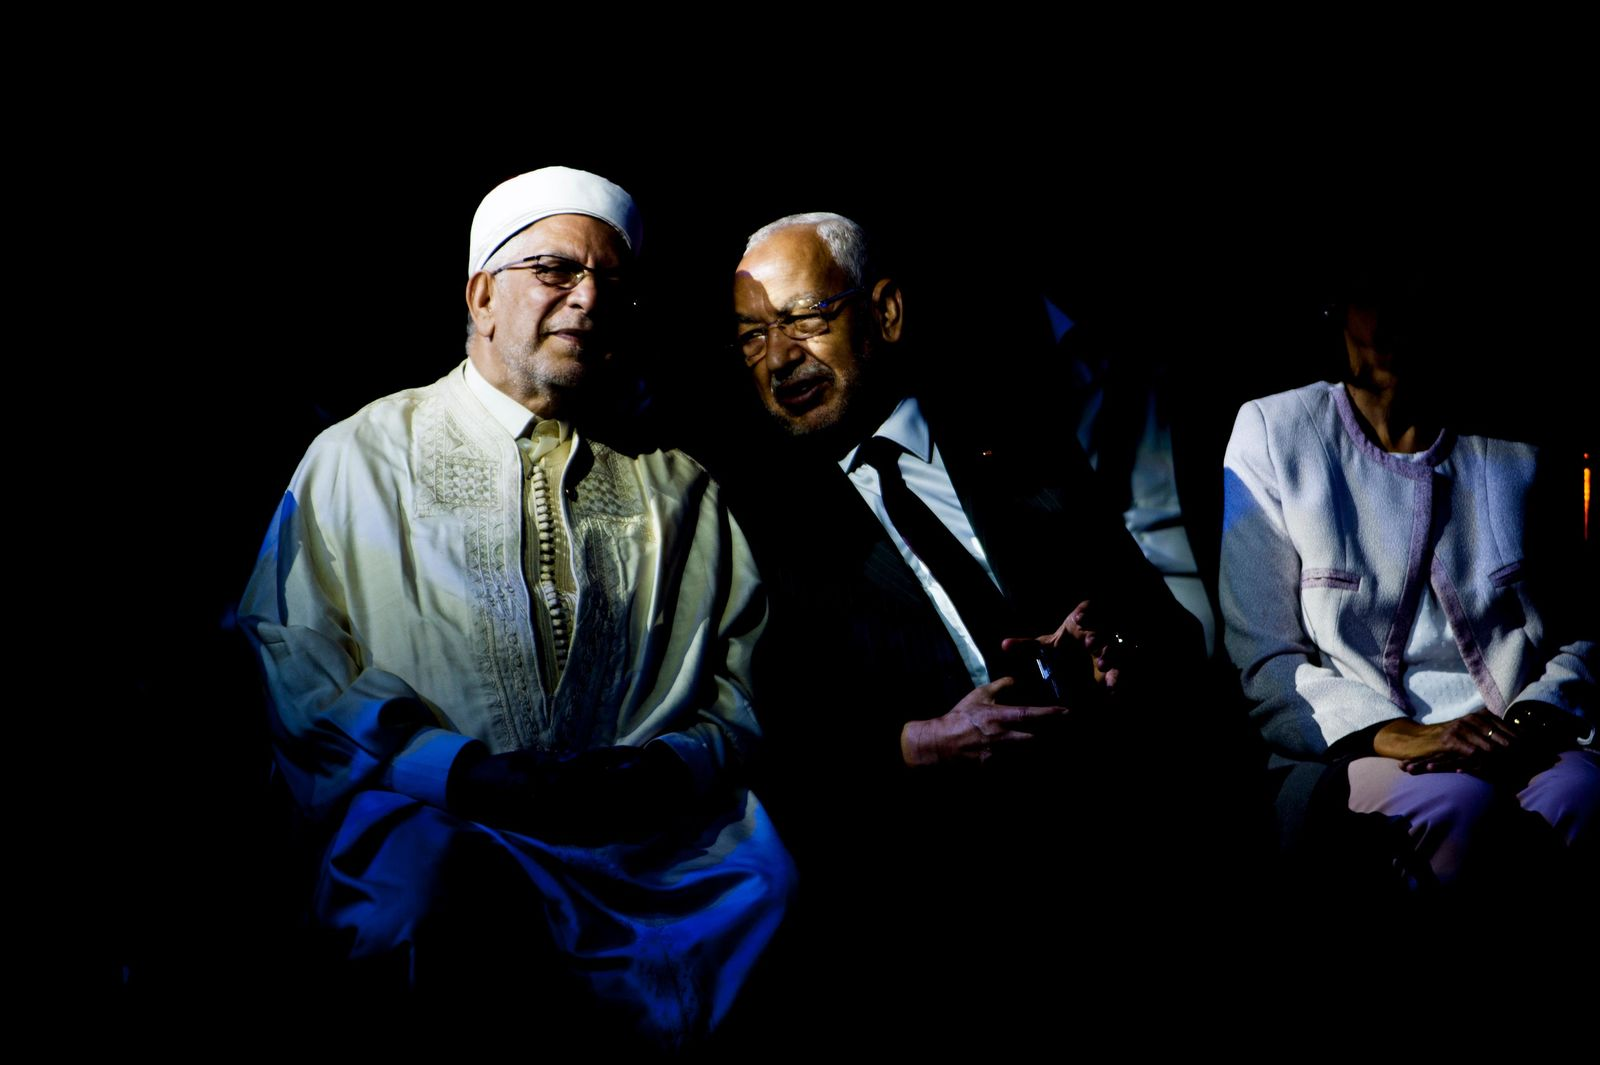 Vice President of the Islamist party Ennahda and candidate for the upcoming presidential elections Abdelfattah Mourou, left, speaks with Leader of the Islamist Ennahda party Rachid Ghannouchi during a meeting with the members of the party in Tunis, Tunisia, Friday, Aug. 30, 2019. (AP Photo/Hassene Dridi)